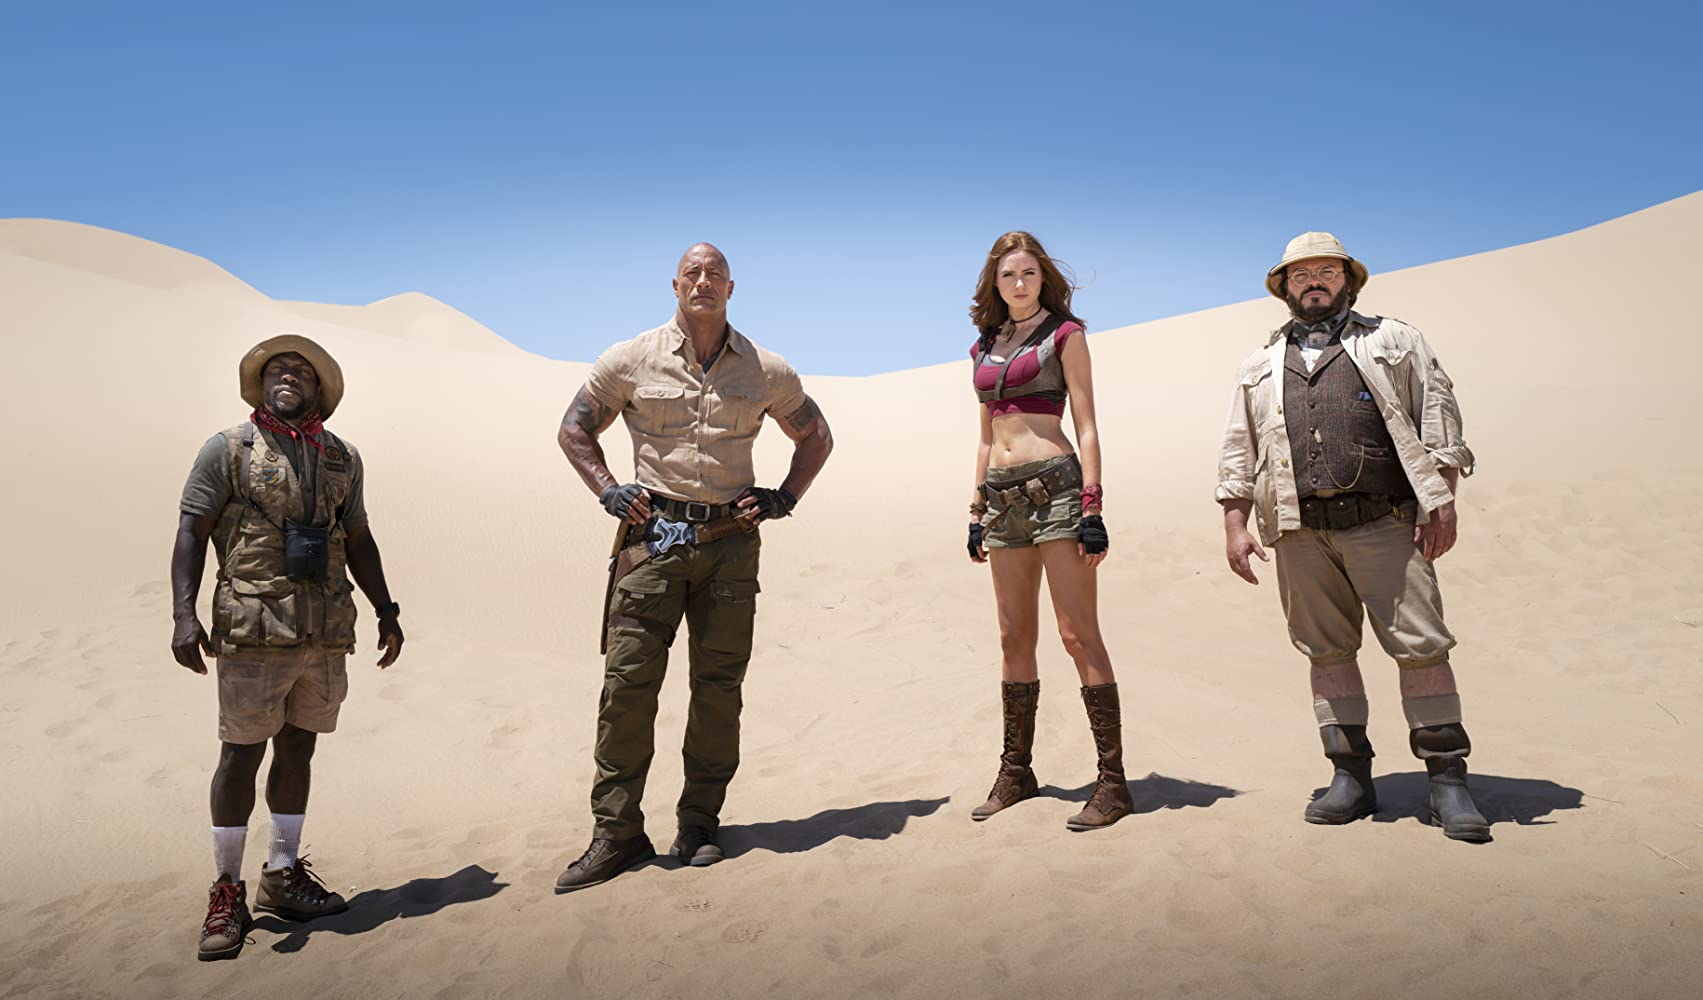 Jack Black, Kevin Hart, Dwayne Johnson, and Karen Gillan in Jumanji: The Next Level (2019)